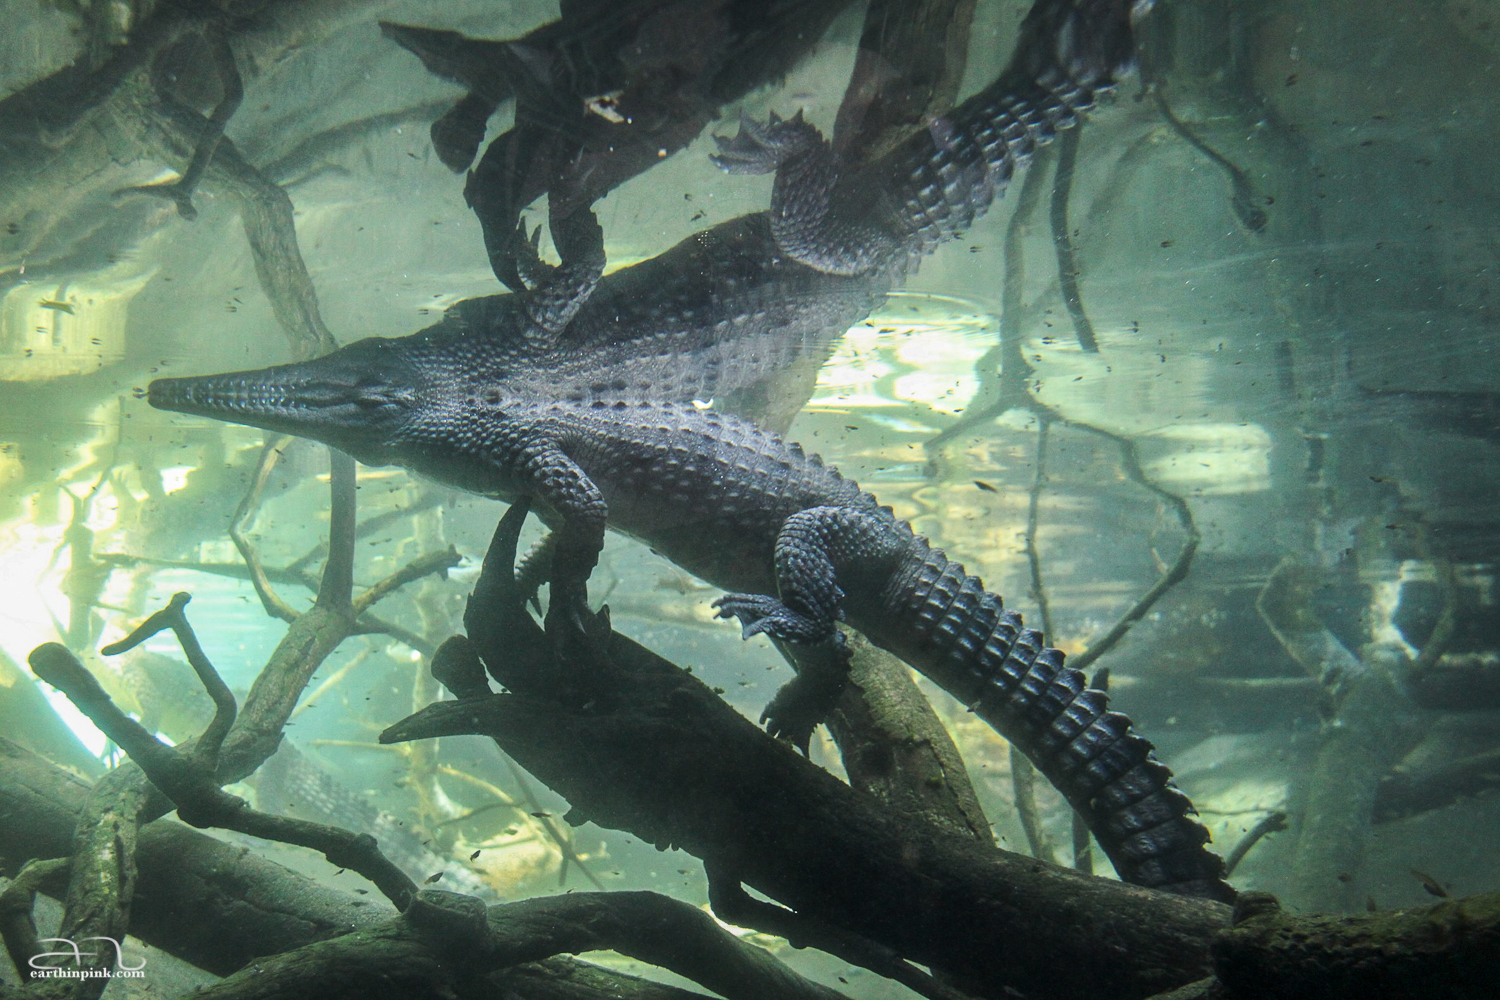 Photo of a crocodile in the San Diego Zoo.